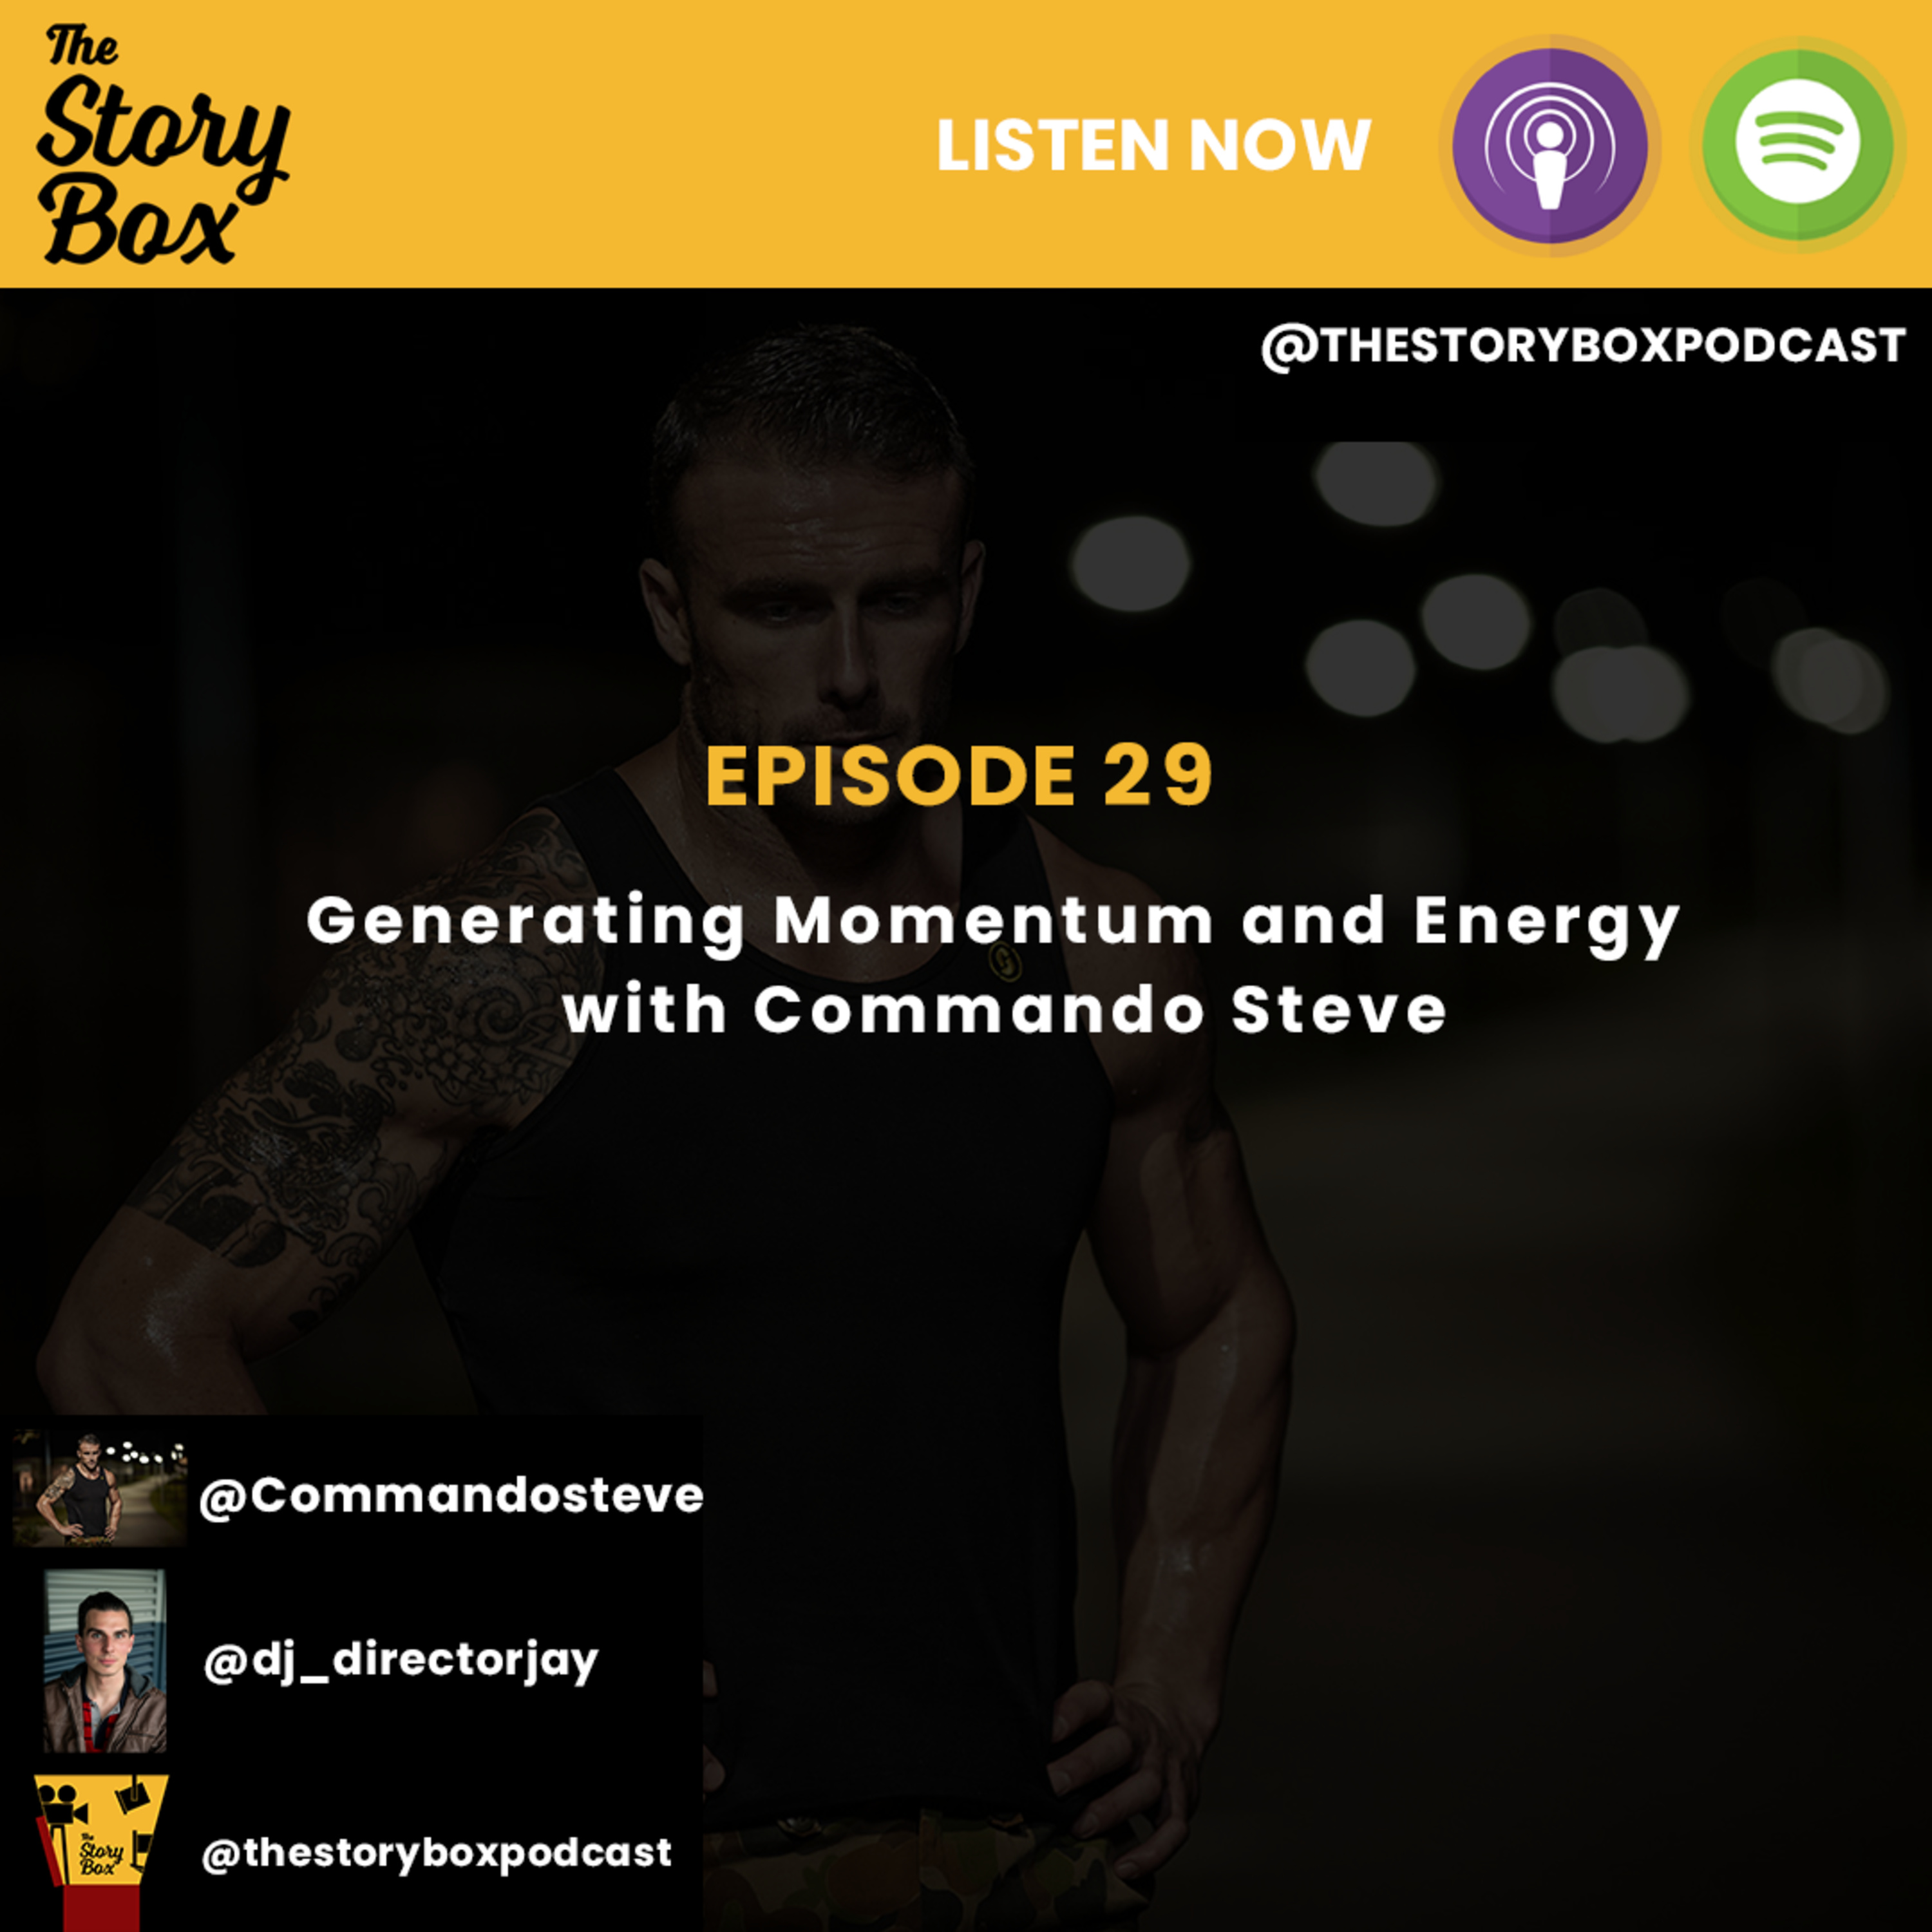 Episode 29 - Generating Momentum and Energy building with Commando Steve